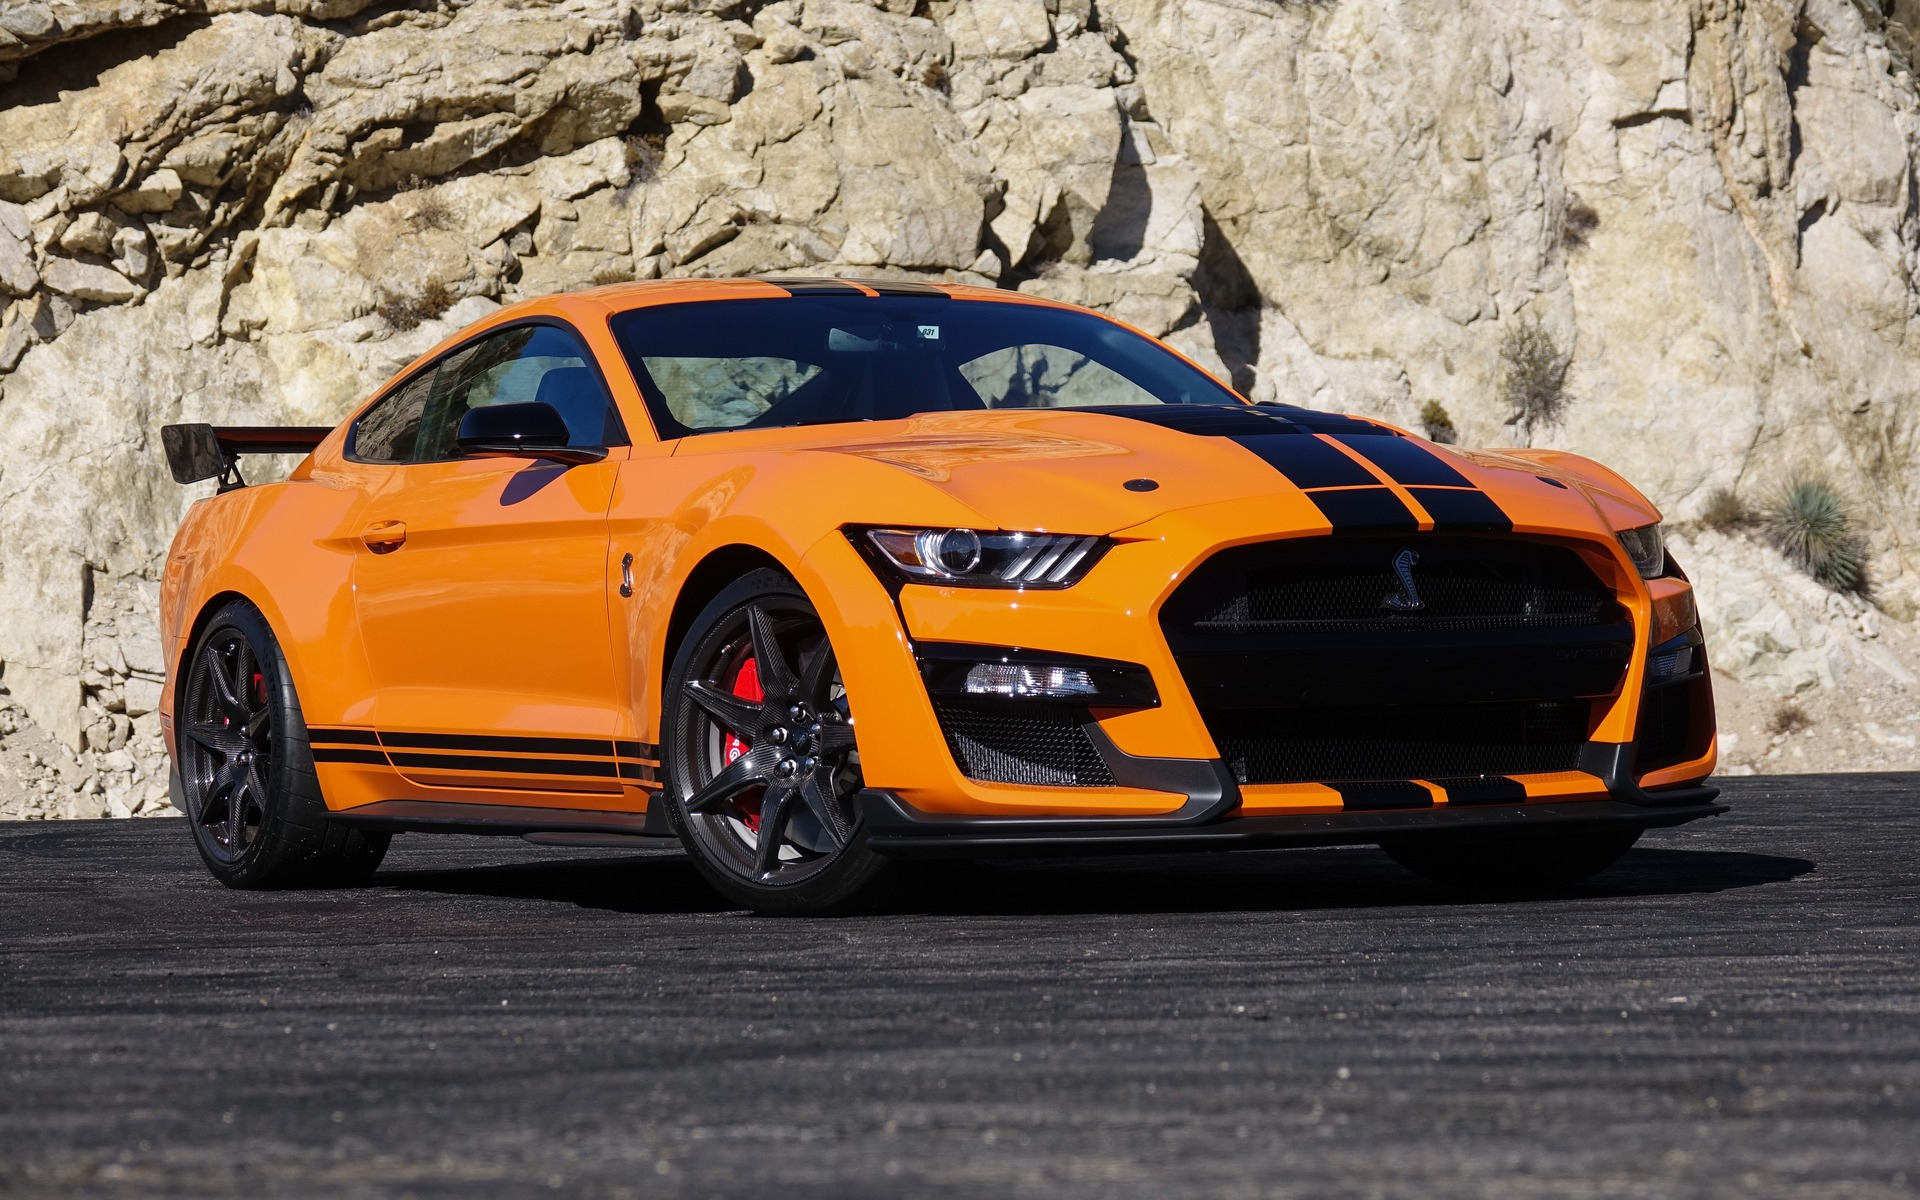 2021 Ford Mustang Gt500 Changes, Interior, Concept, Engine ...